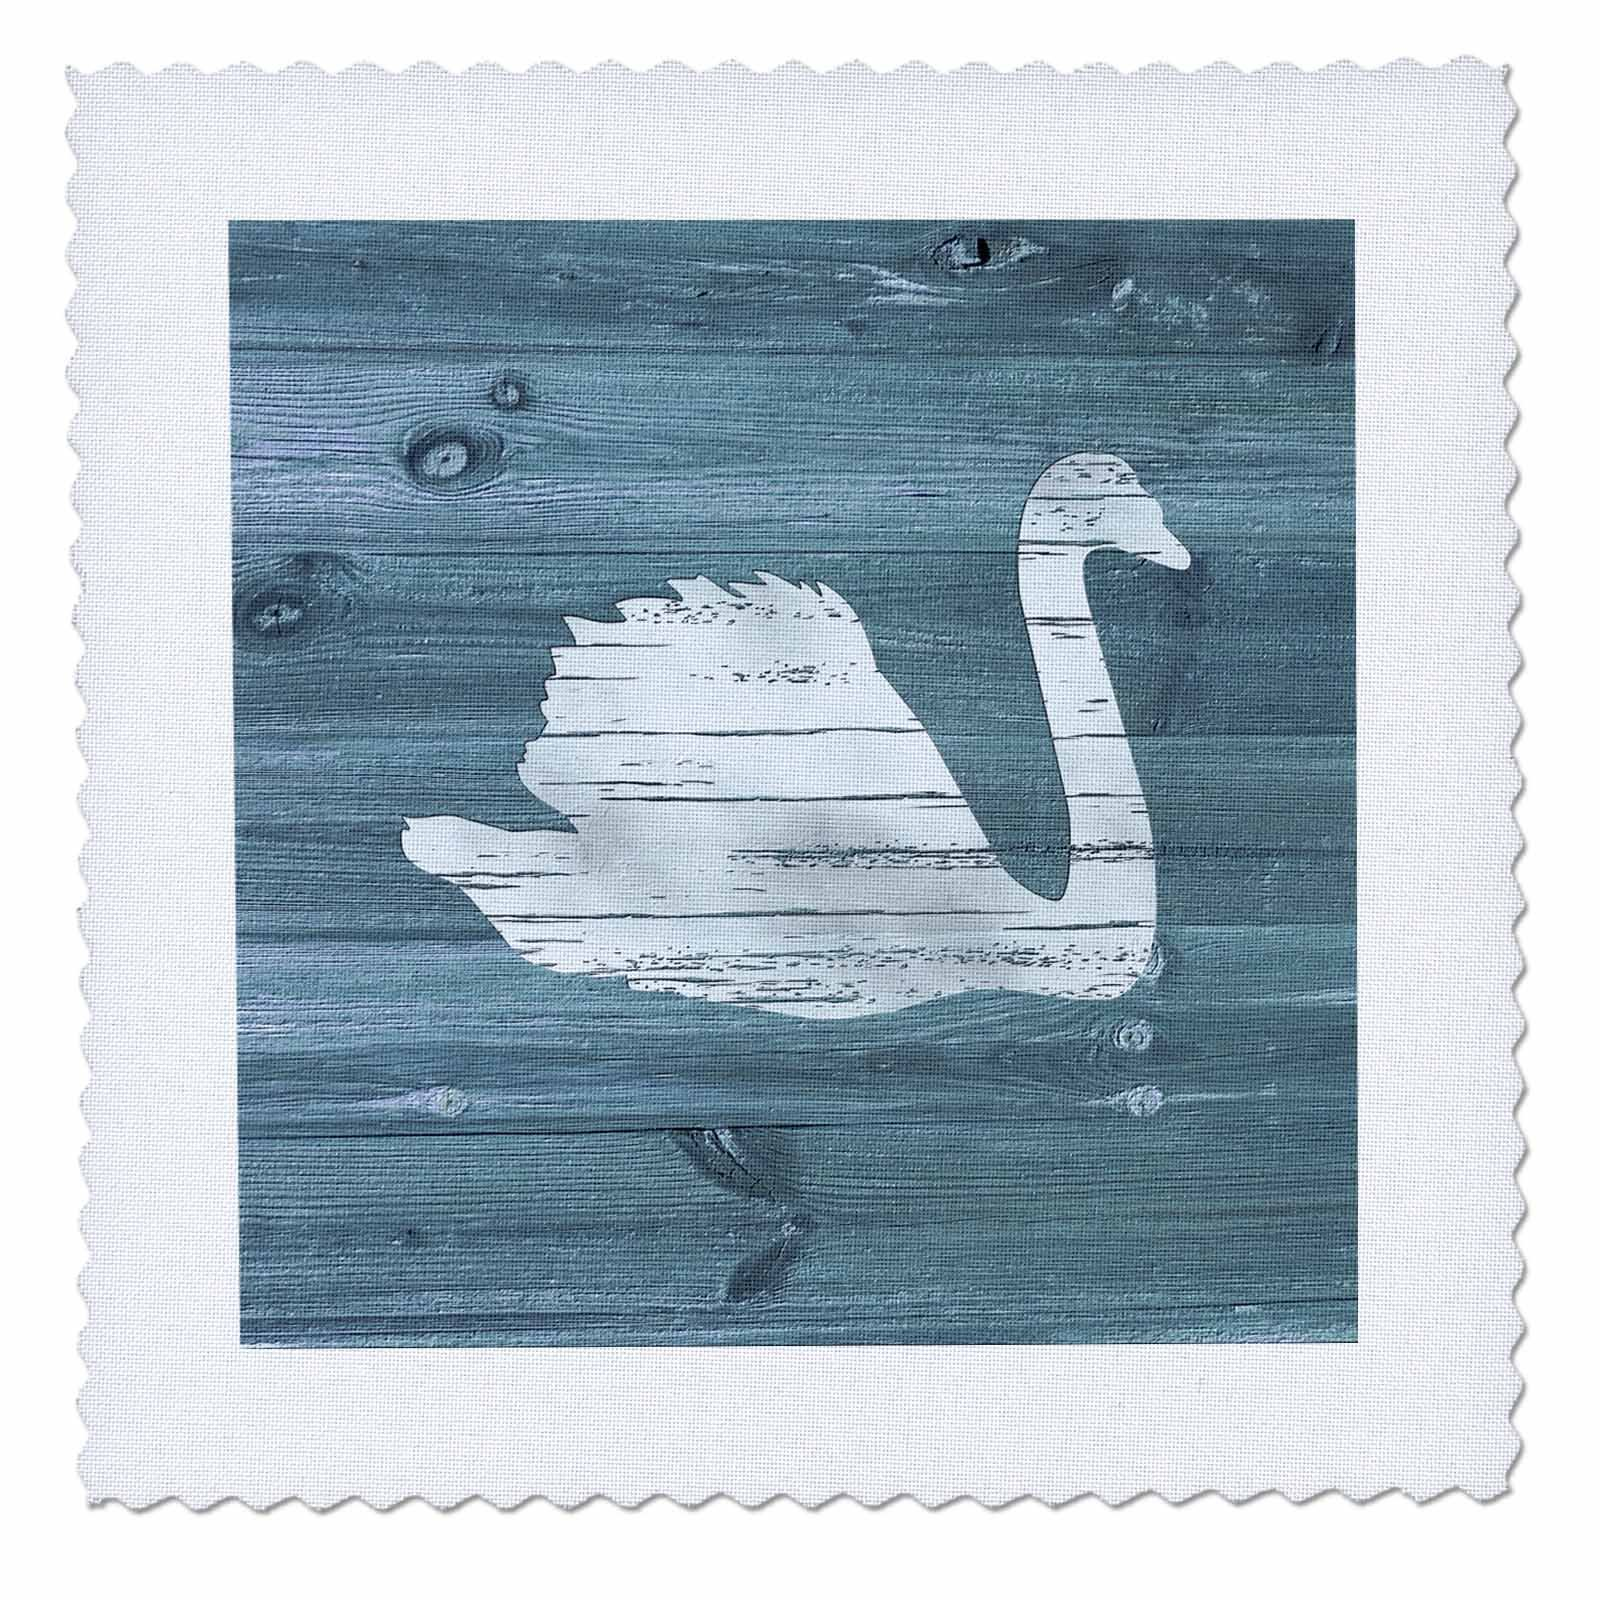 3dRose Russ Billington Designs - White Painted Swan on Blue Weatherboard- Not Real Wood - 18x18 inch quilt square (qs_261840_7)